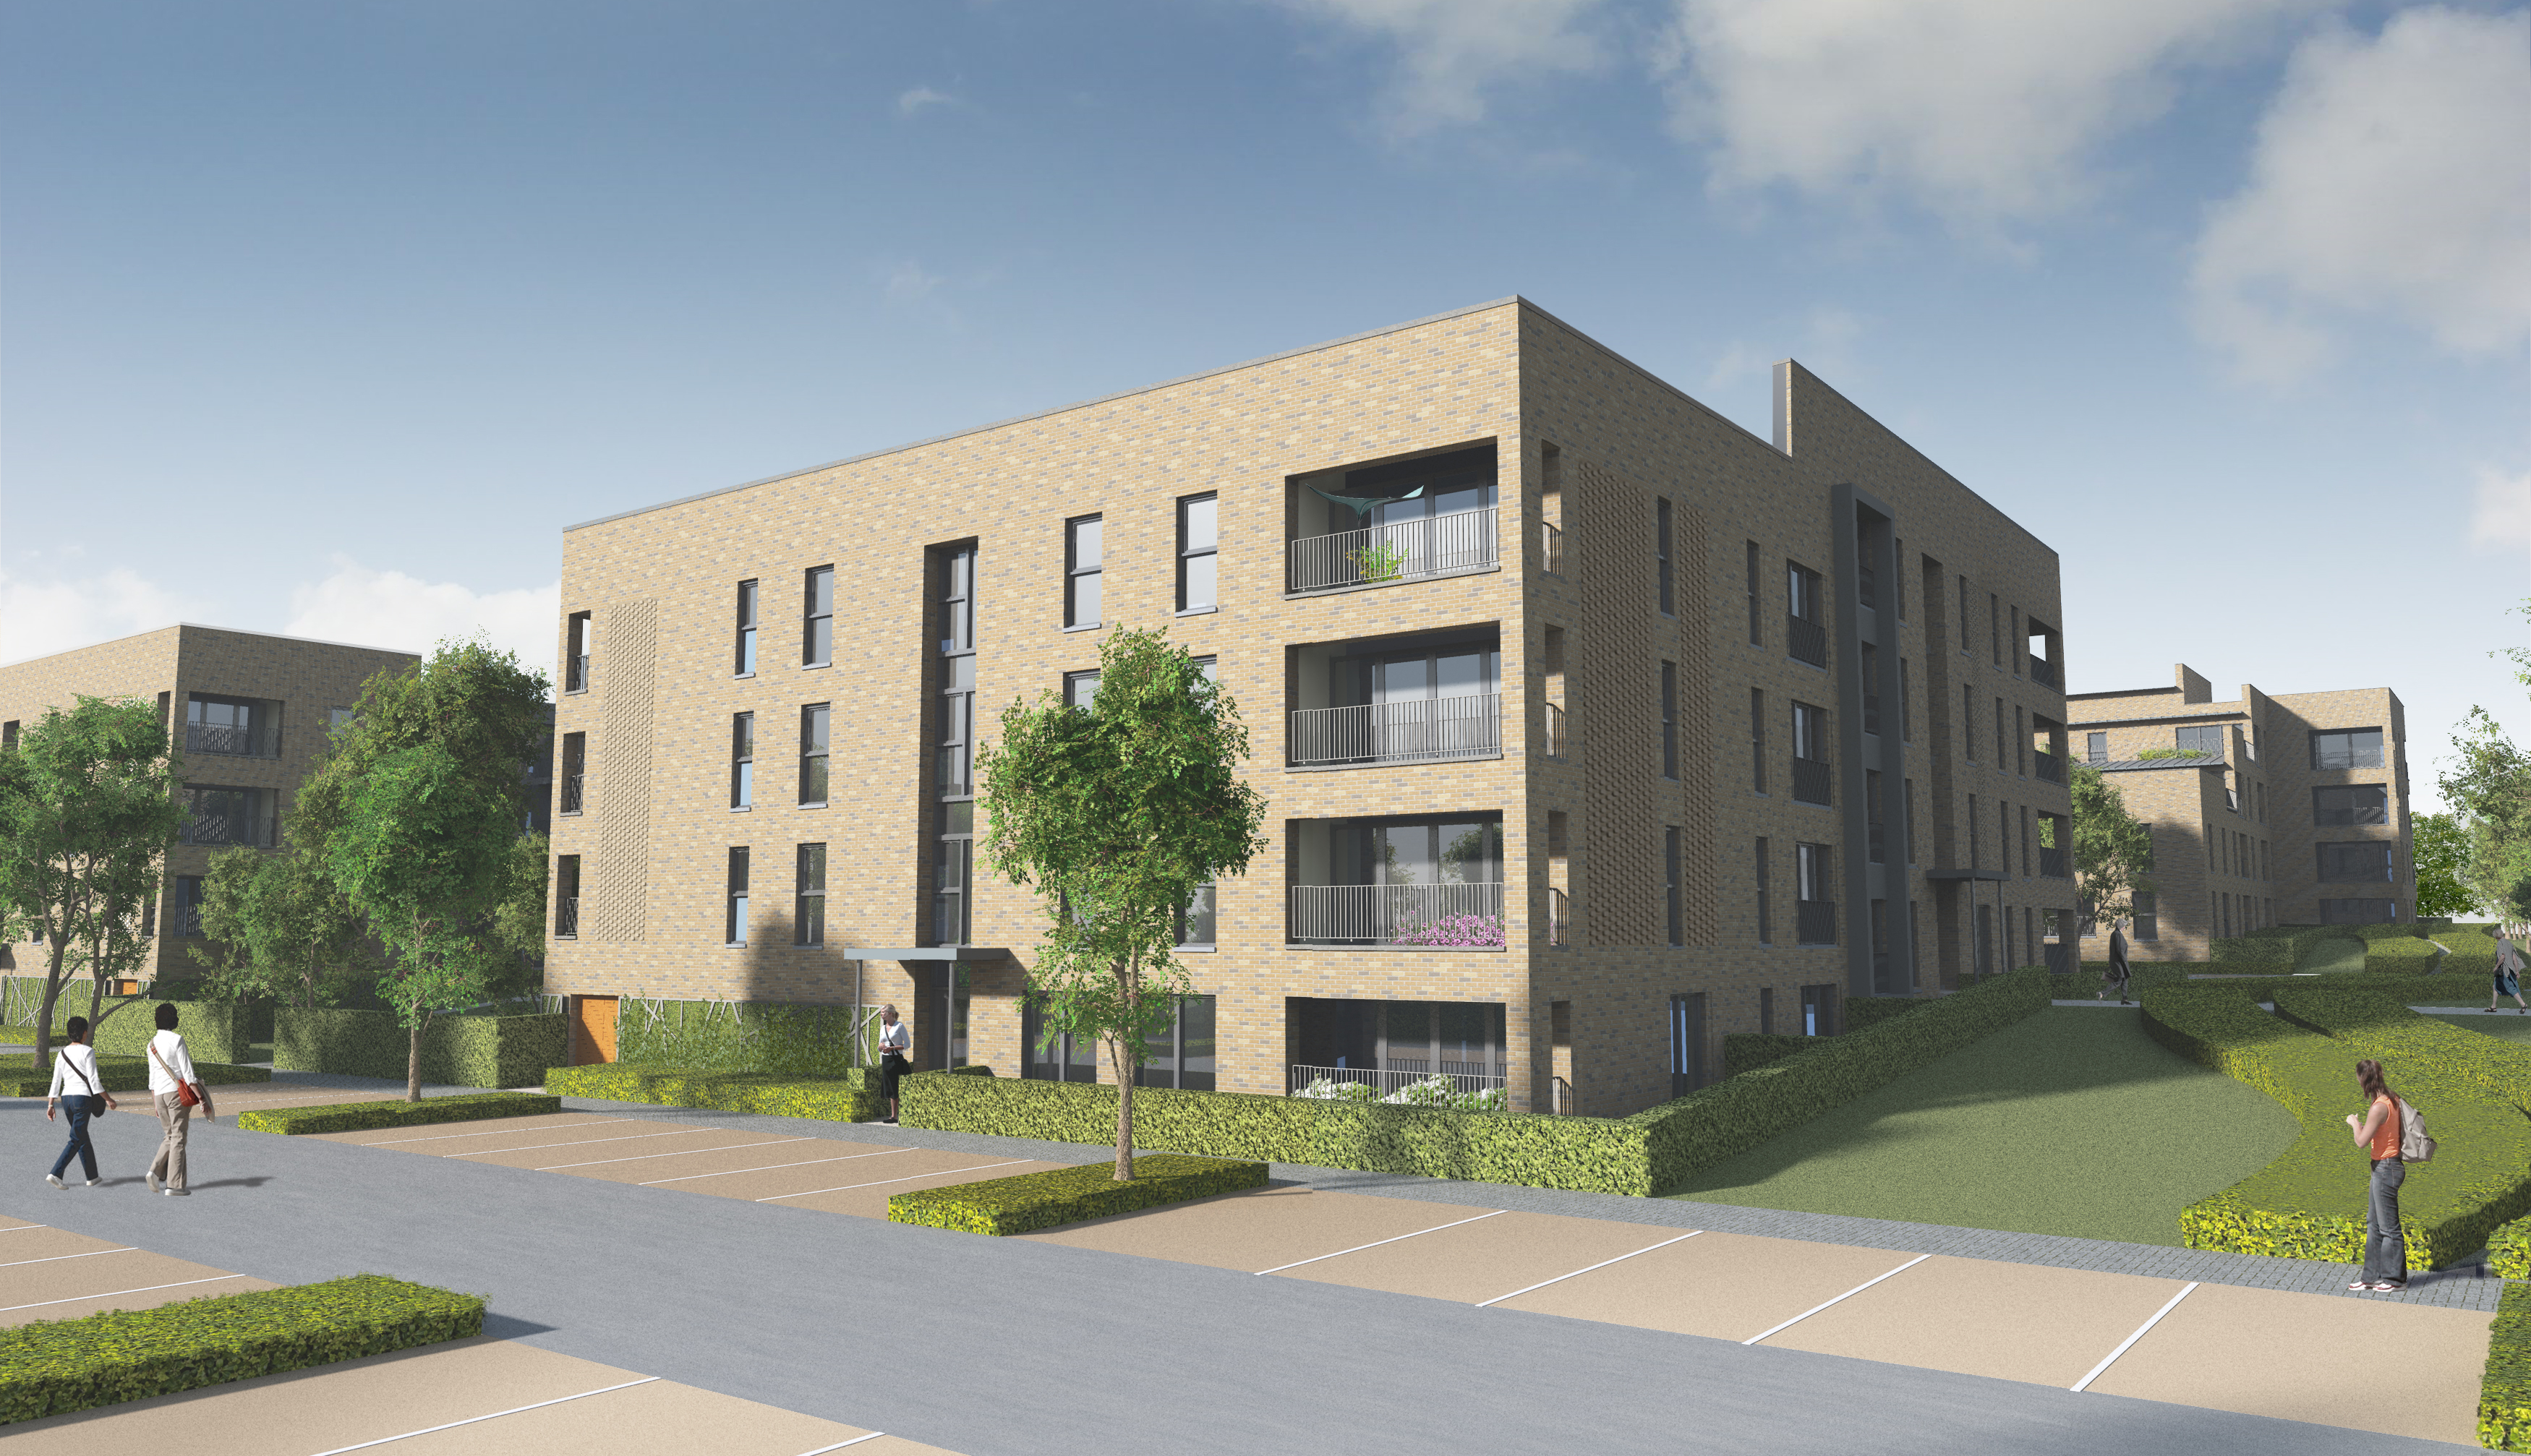 An artist's impression of how the flats could look on the Lang Stracht site.